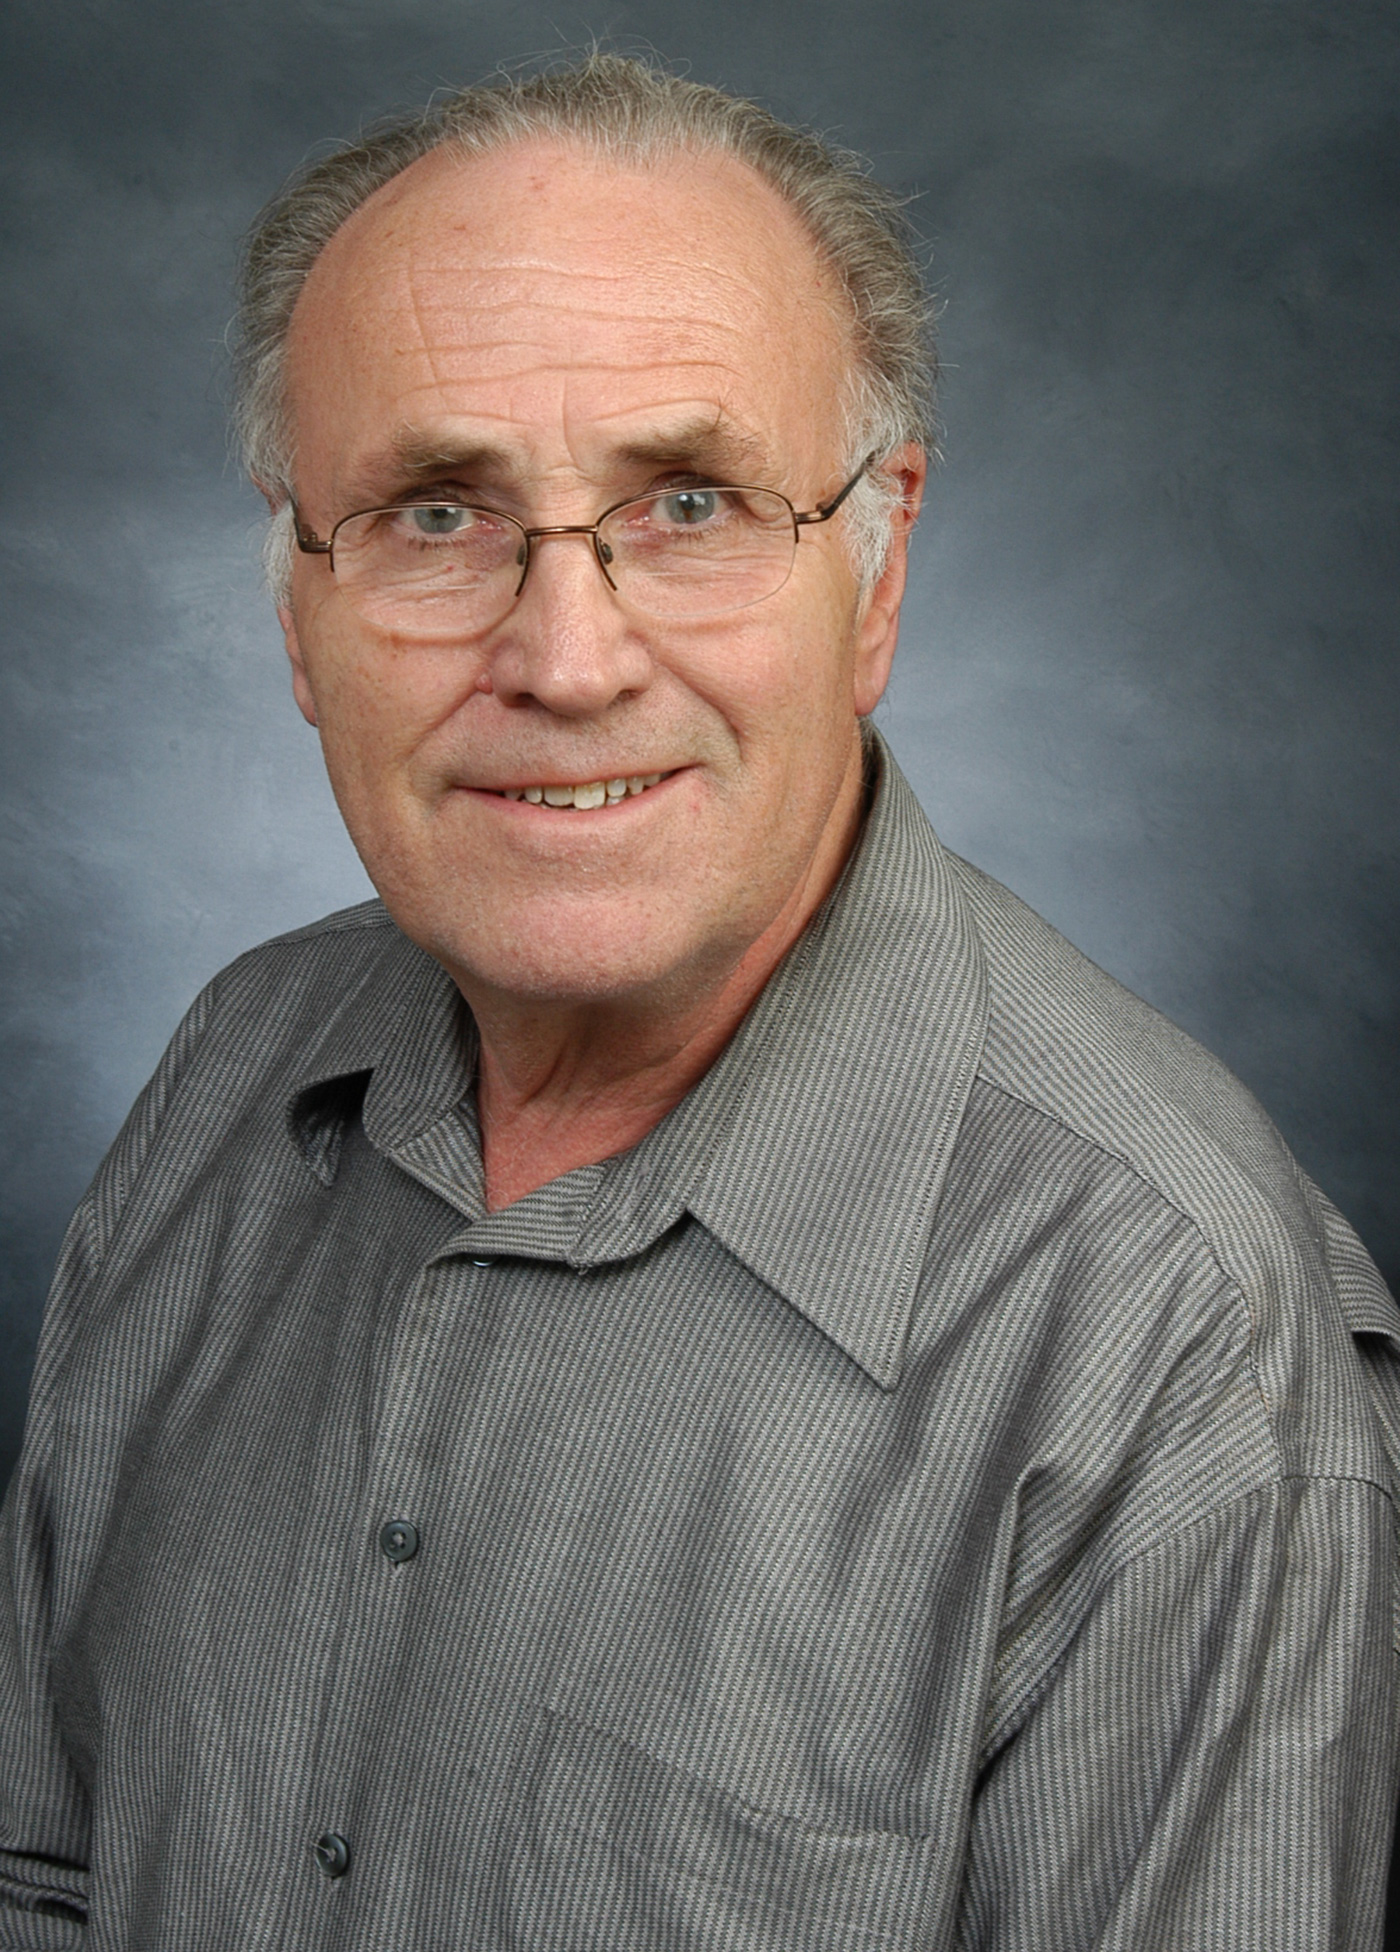 ROBERT E. PARKIN, MECHANICAL ENGINEERING, RENEWABLE ENERGY ENGINEERING  Professor